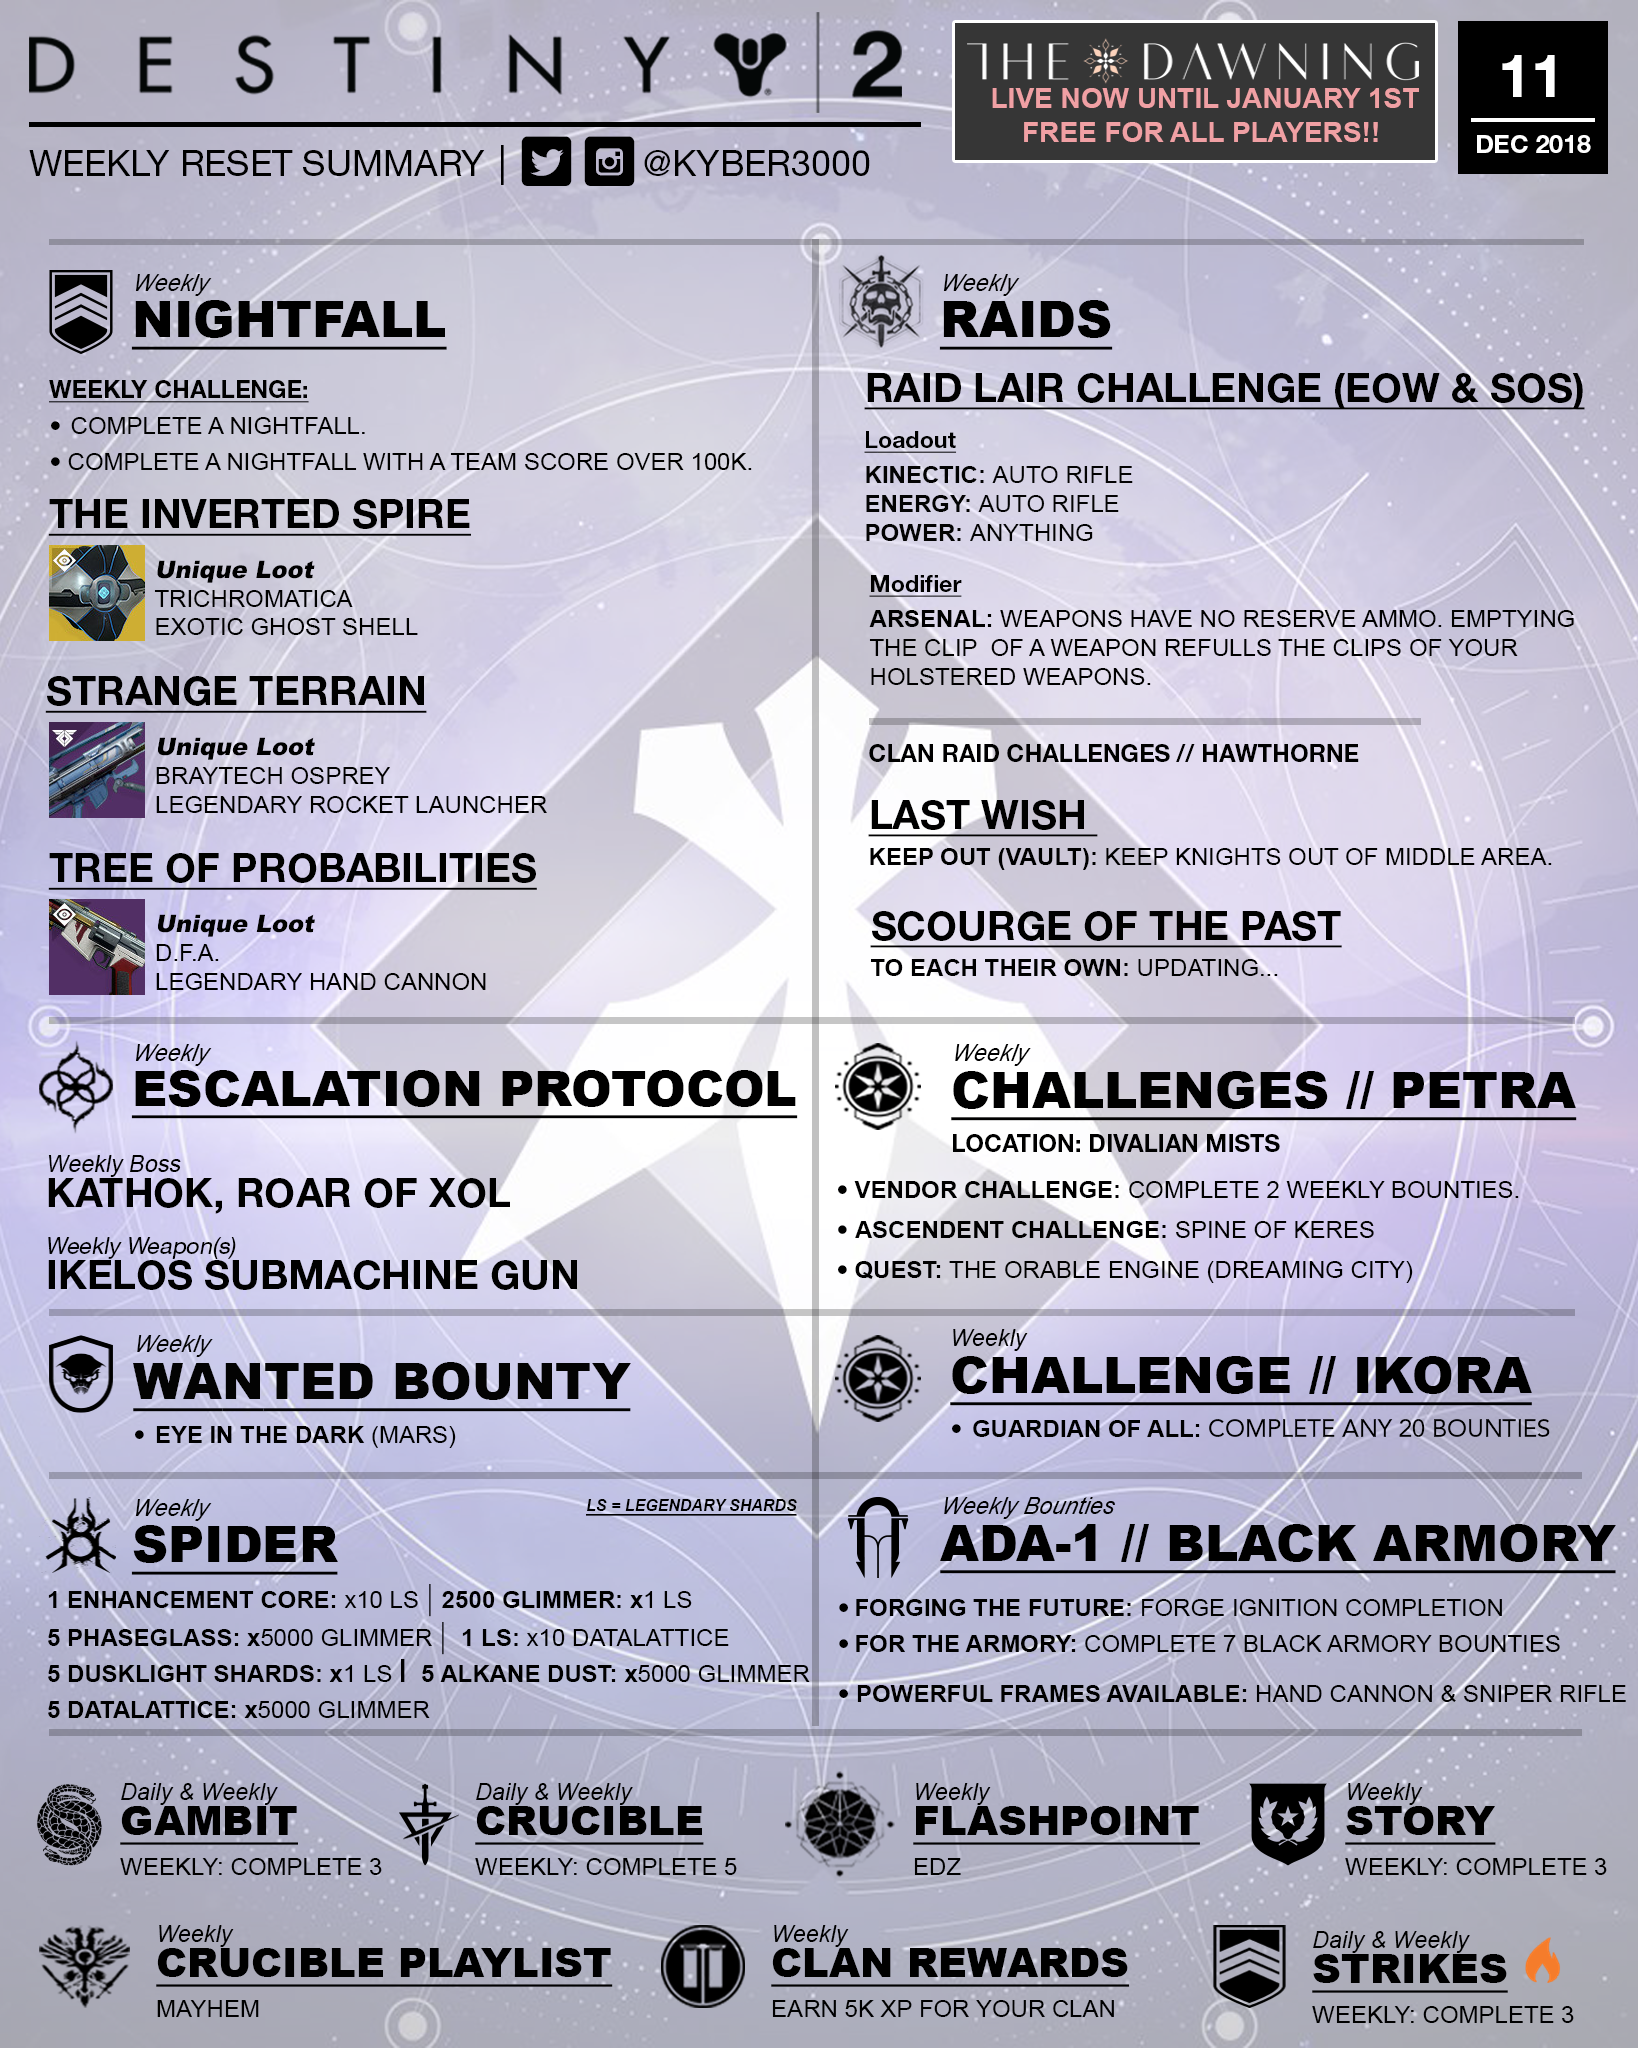 Destiny 2 Weekly Reset – The Dawning is Live! (12/11 – 12/18